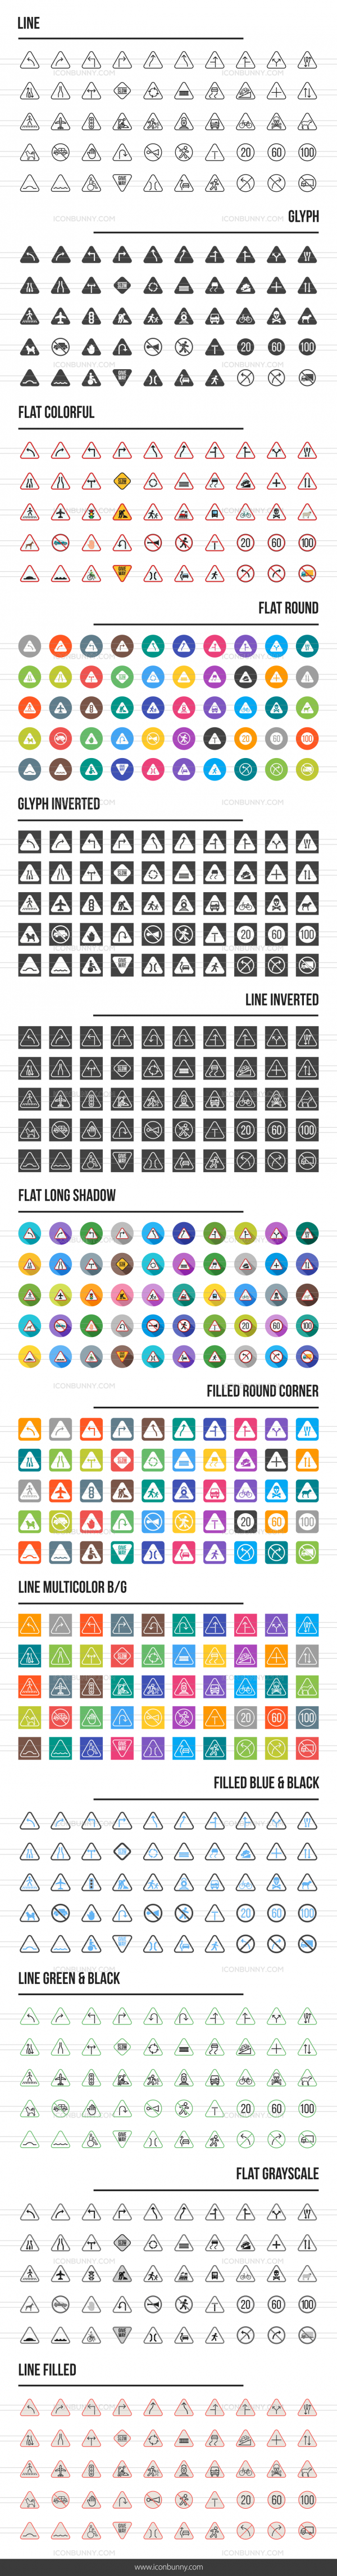 Traffic Signs Icons Bundle - Preview - IconBunny